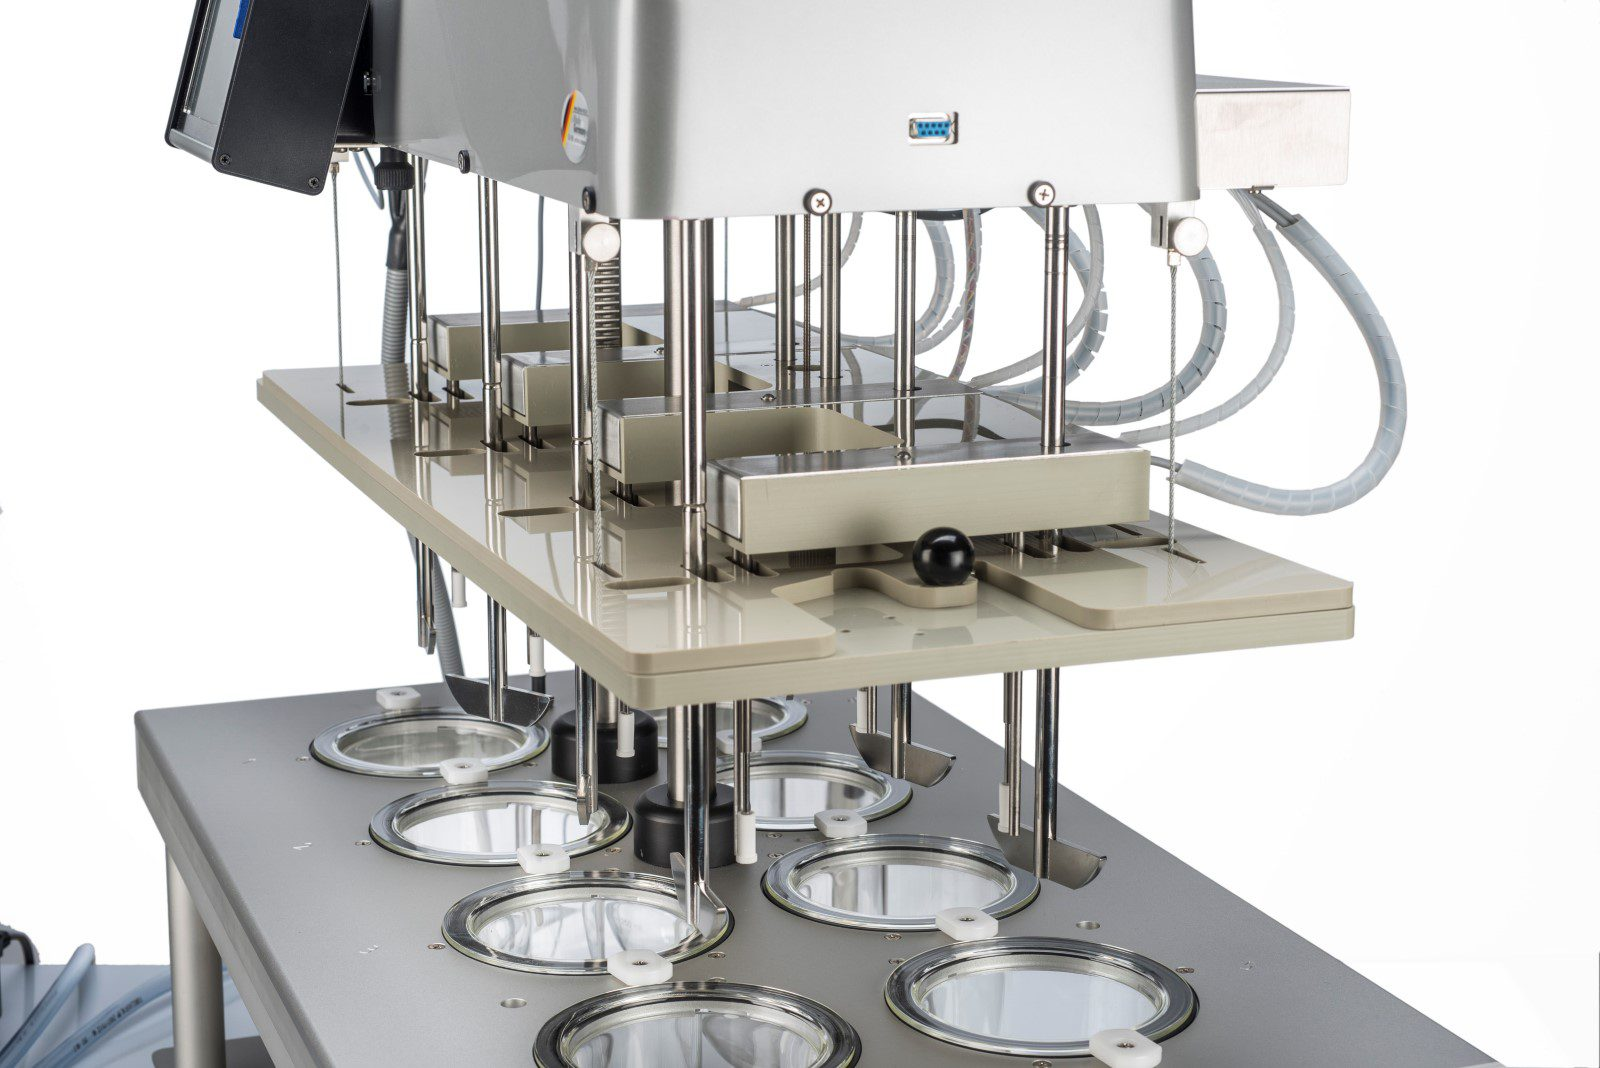 The EPE automated sampling manifold is driven into the test vessels at programmable intervals